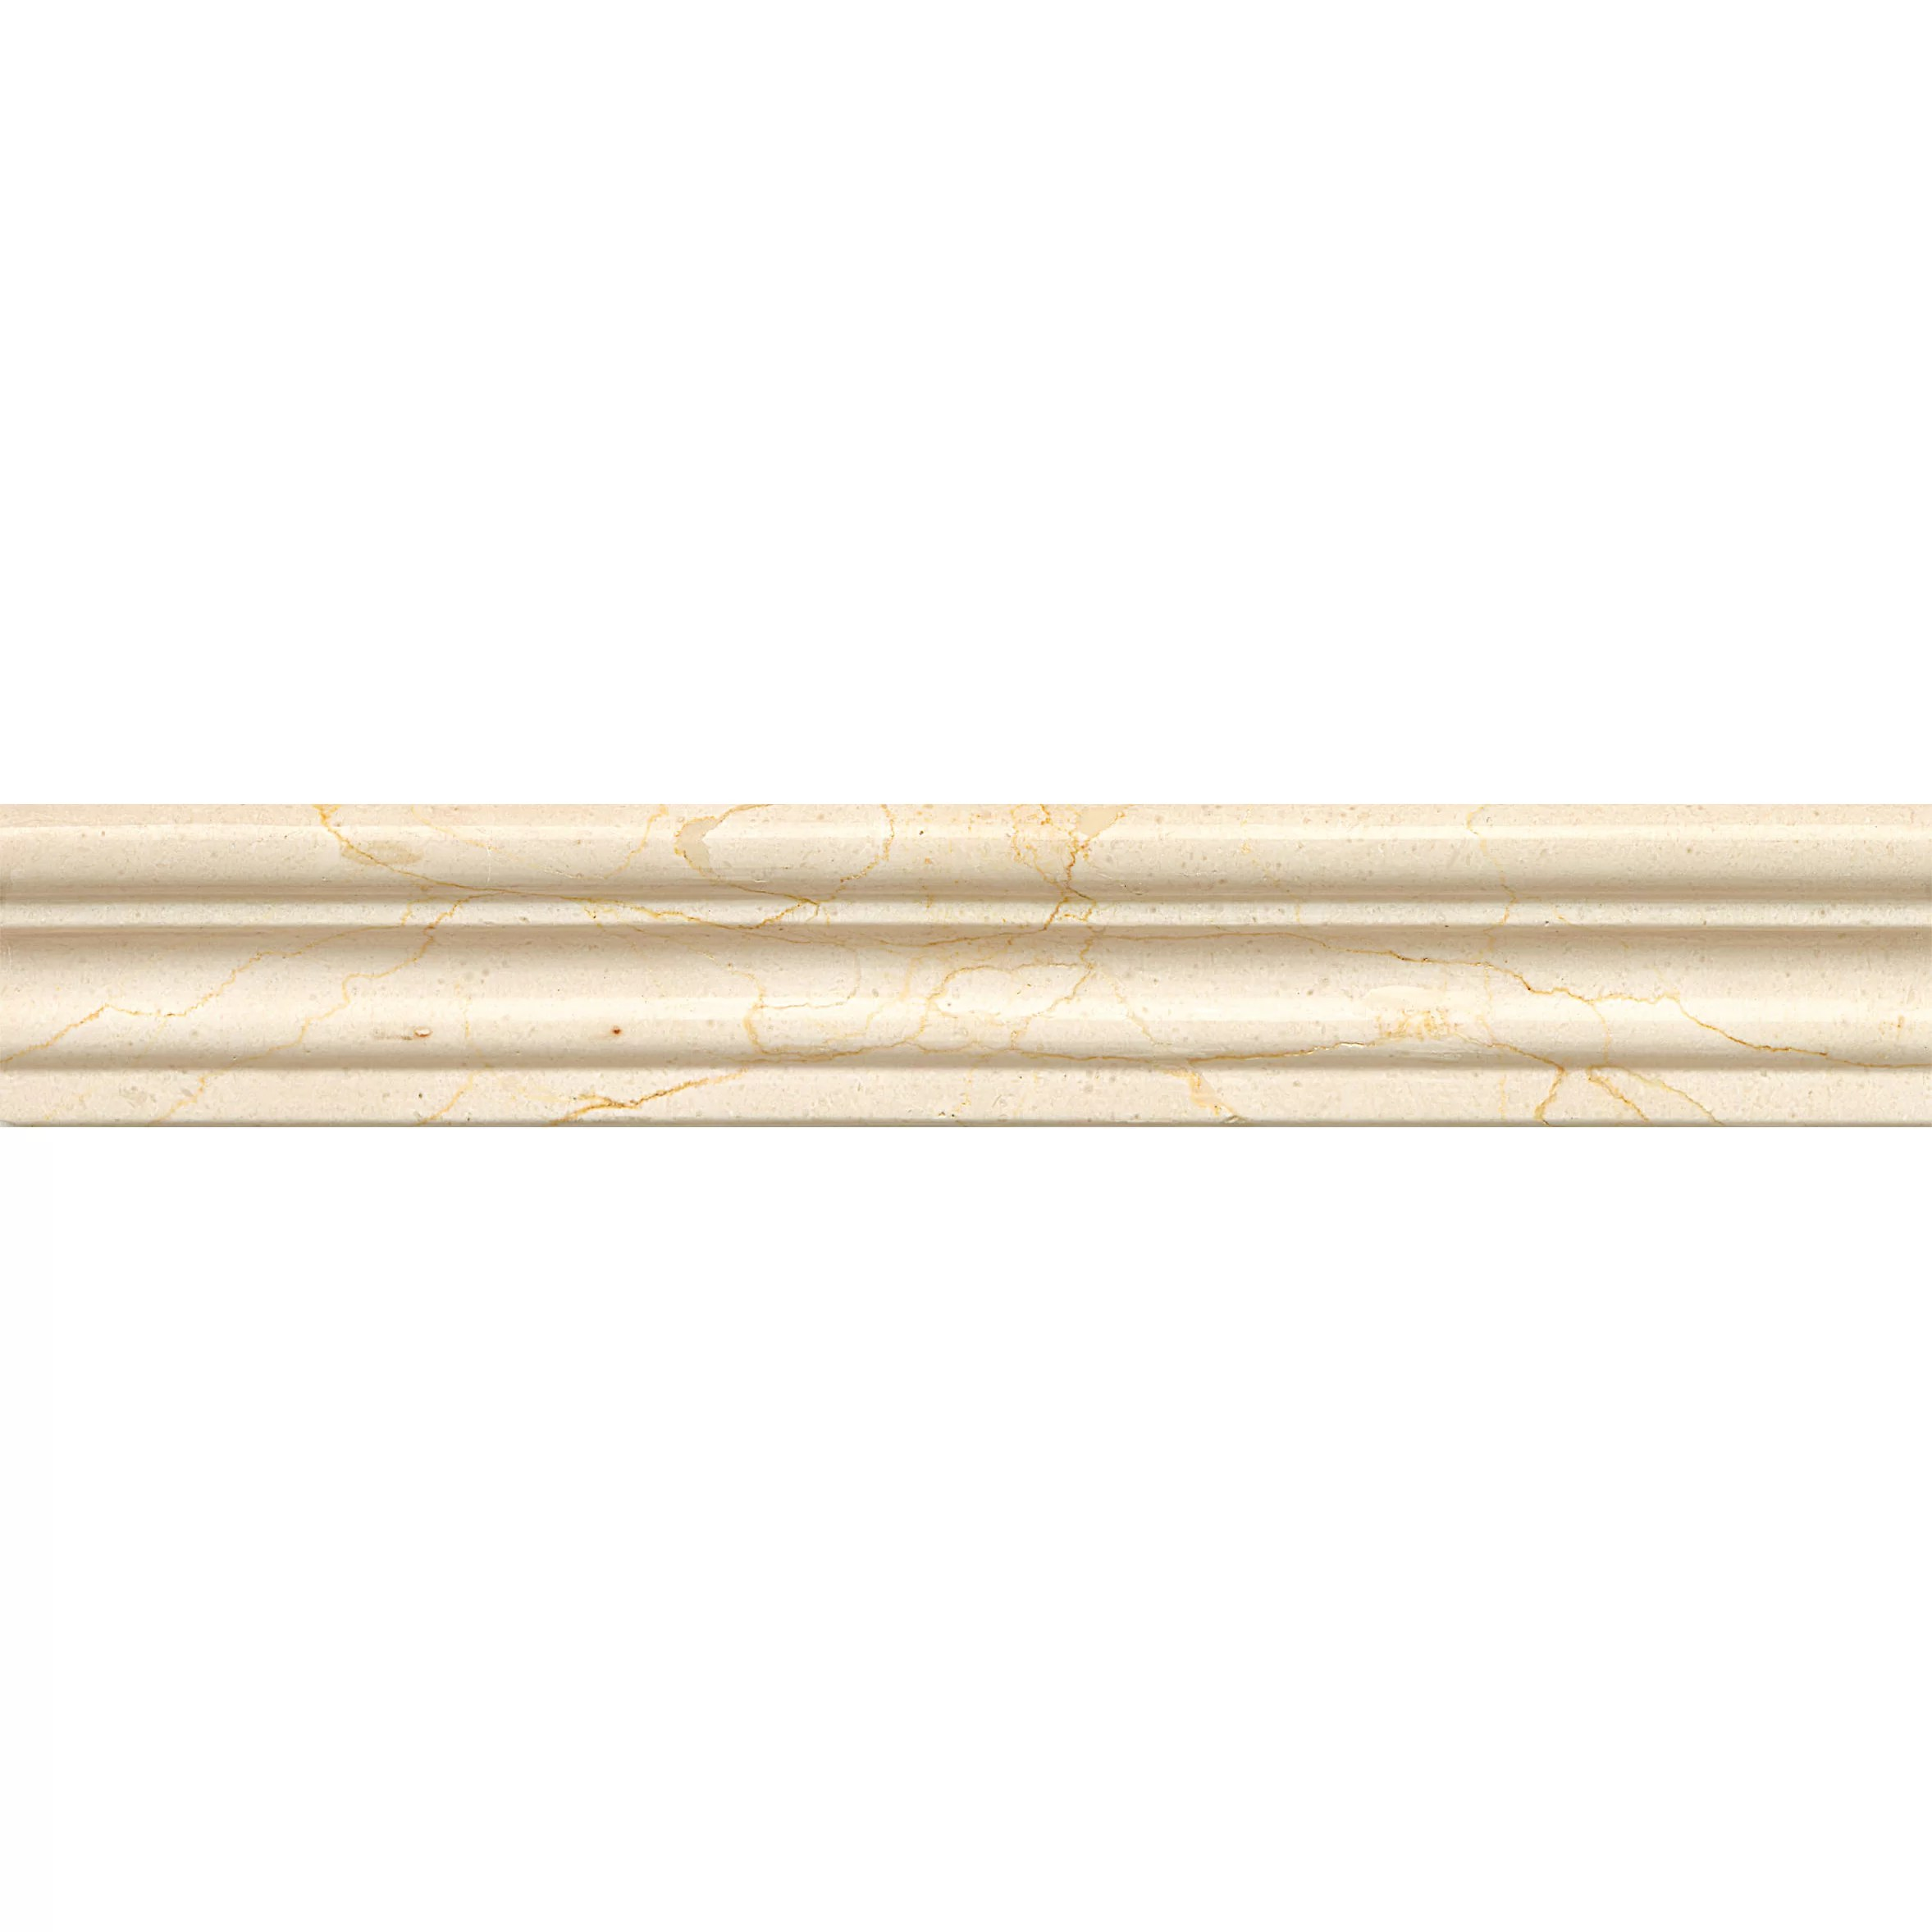 Chair Rail Tile Select Chair Rail 2 Quot X 12 Quot Marble Polished Tile In Crema